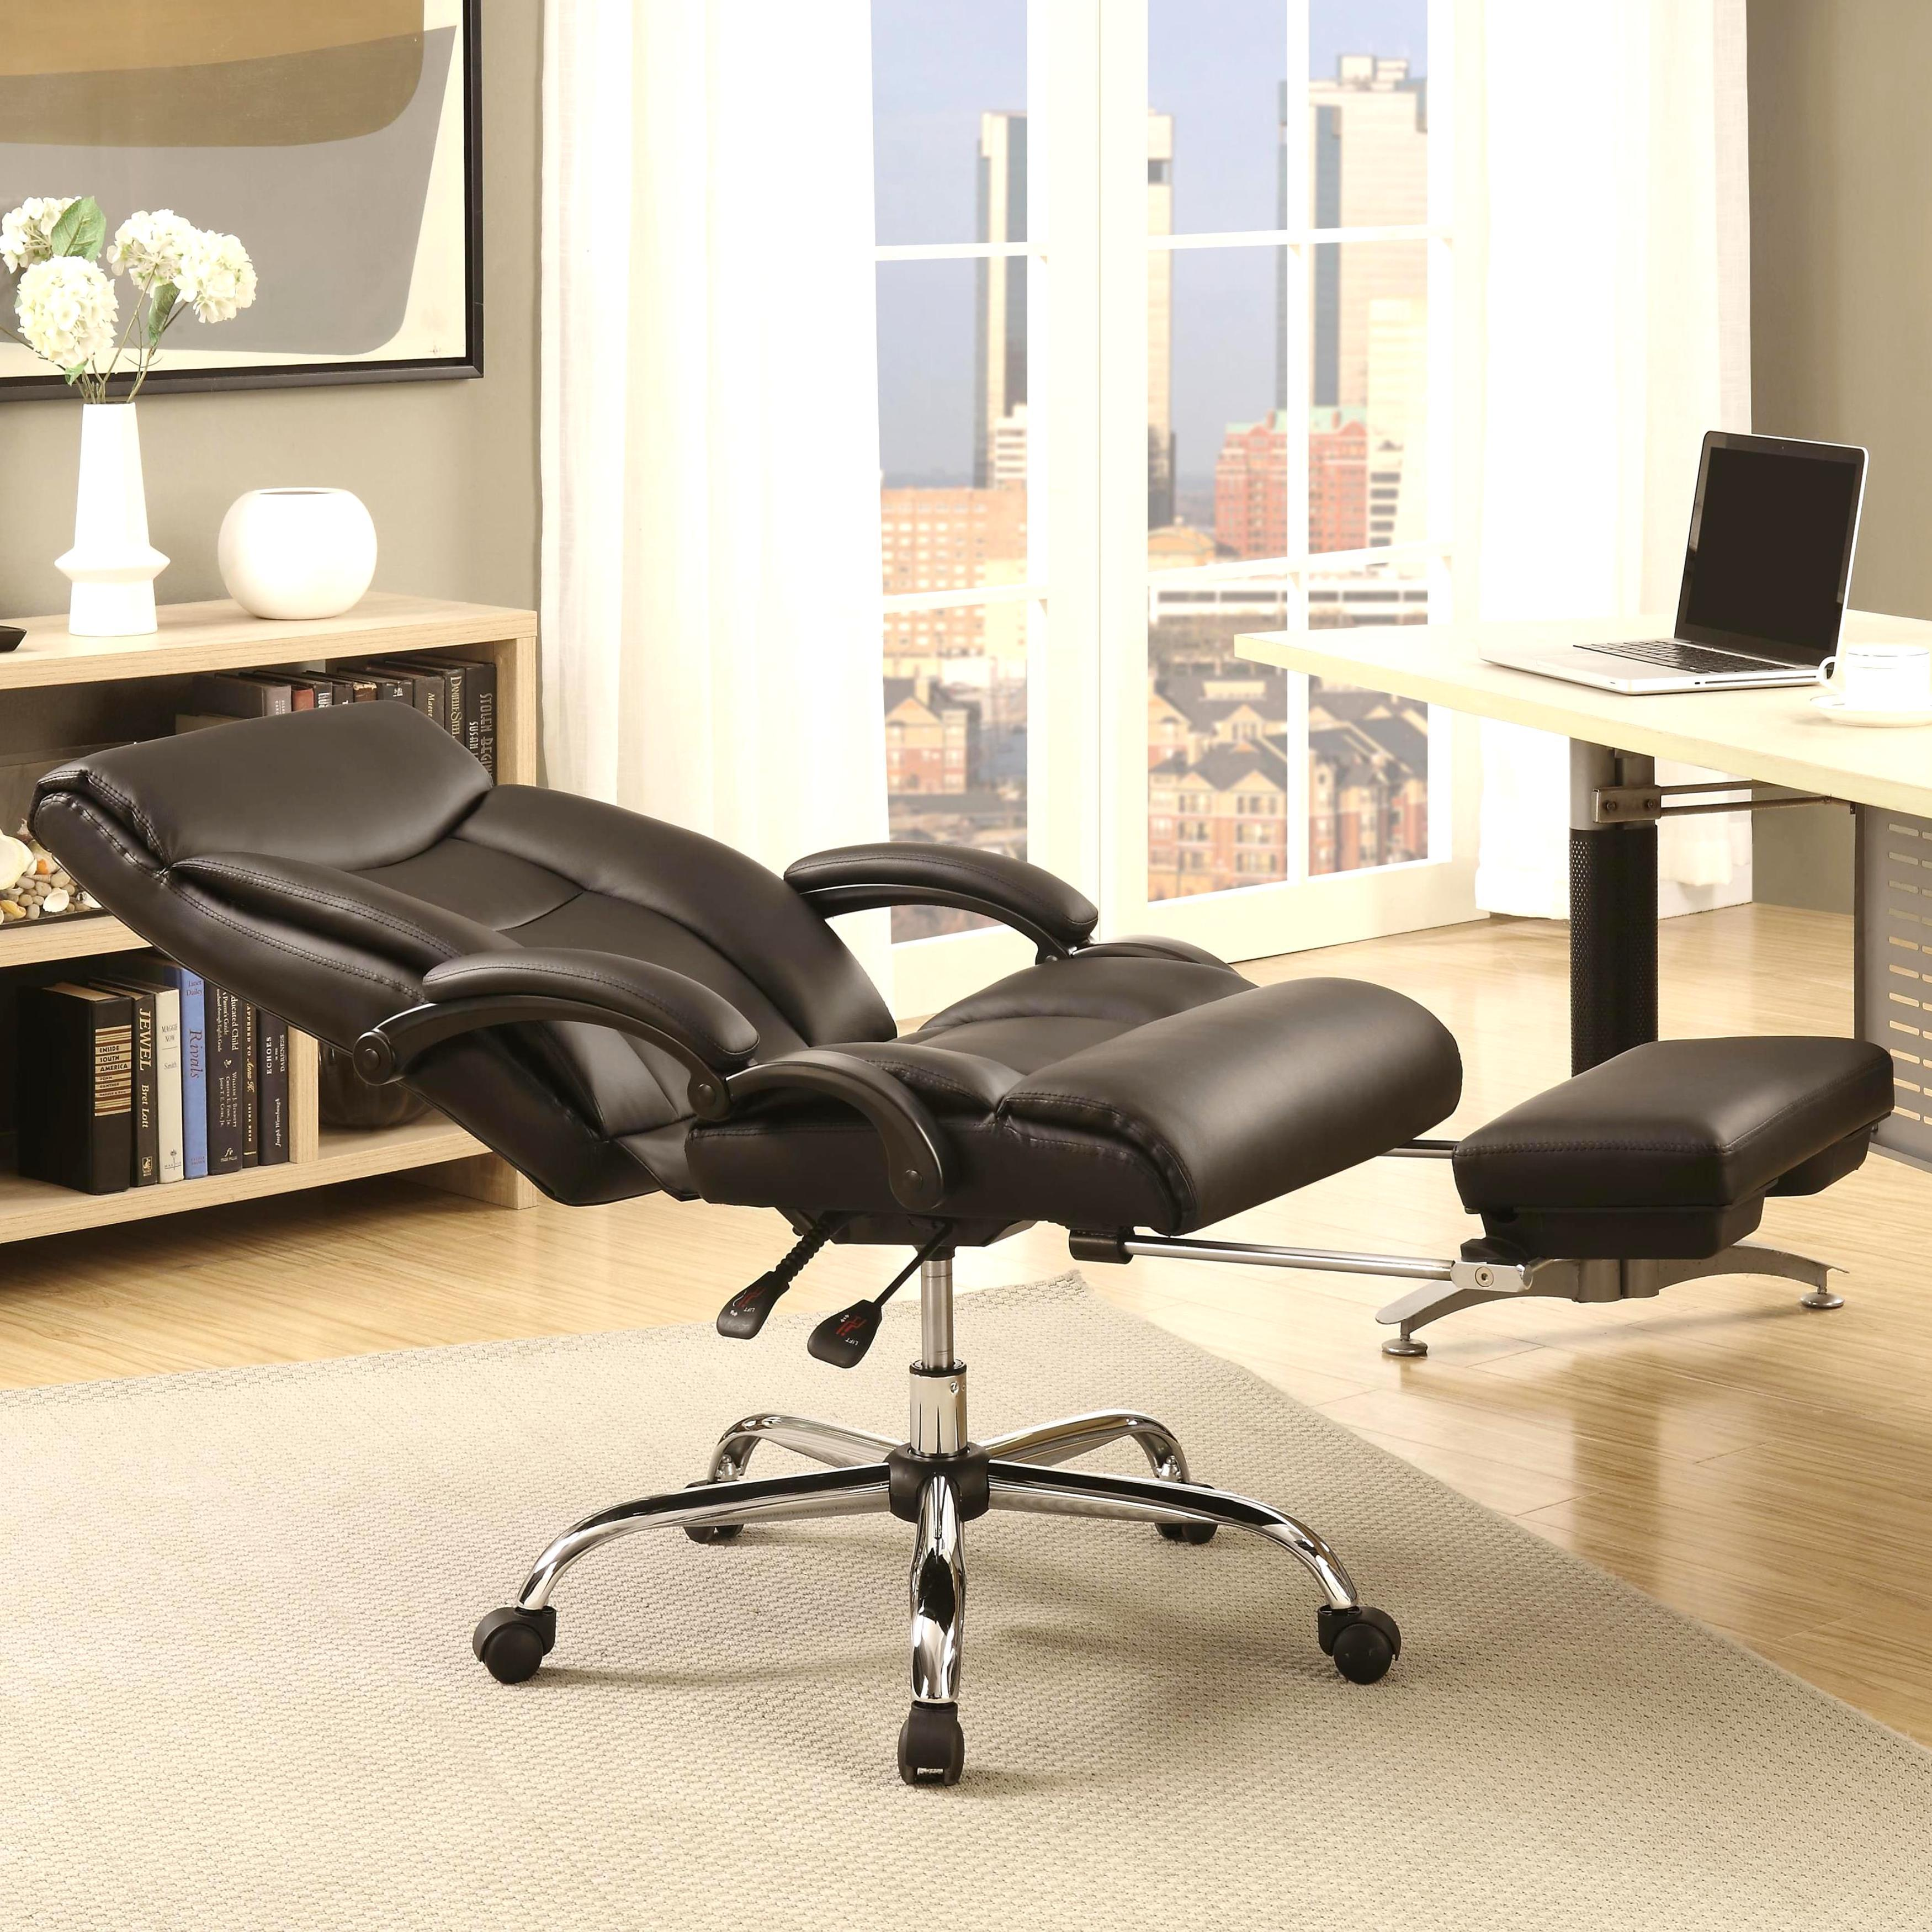 separation shoes b1929 b344d Executive Adjustable Reclining Office Chair with Incremental Footrest